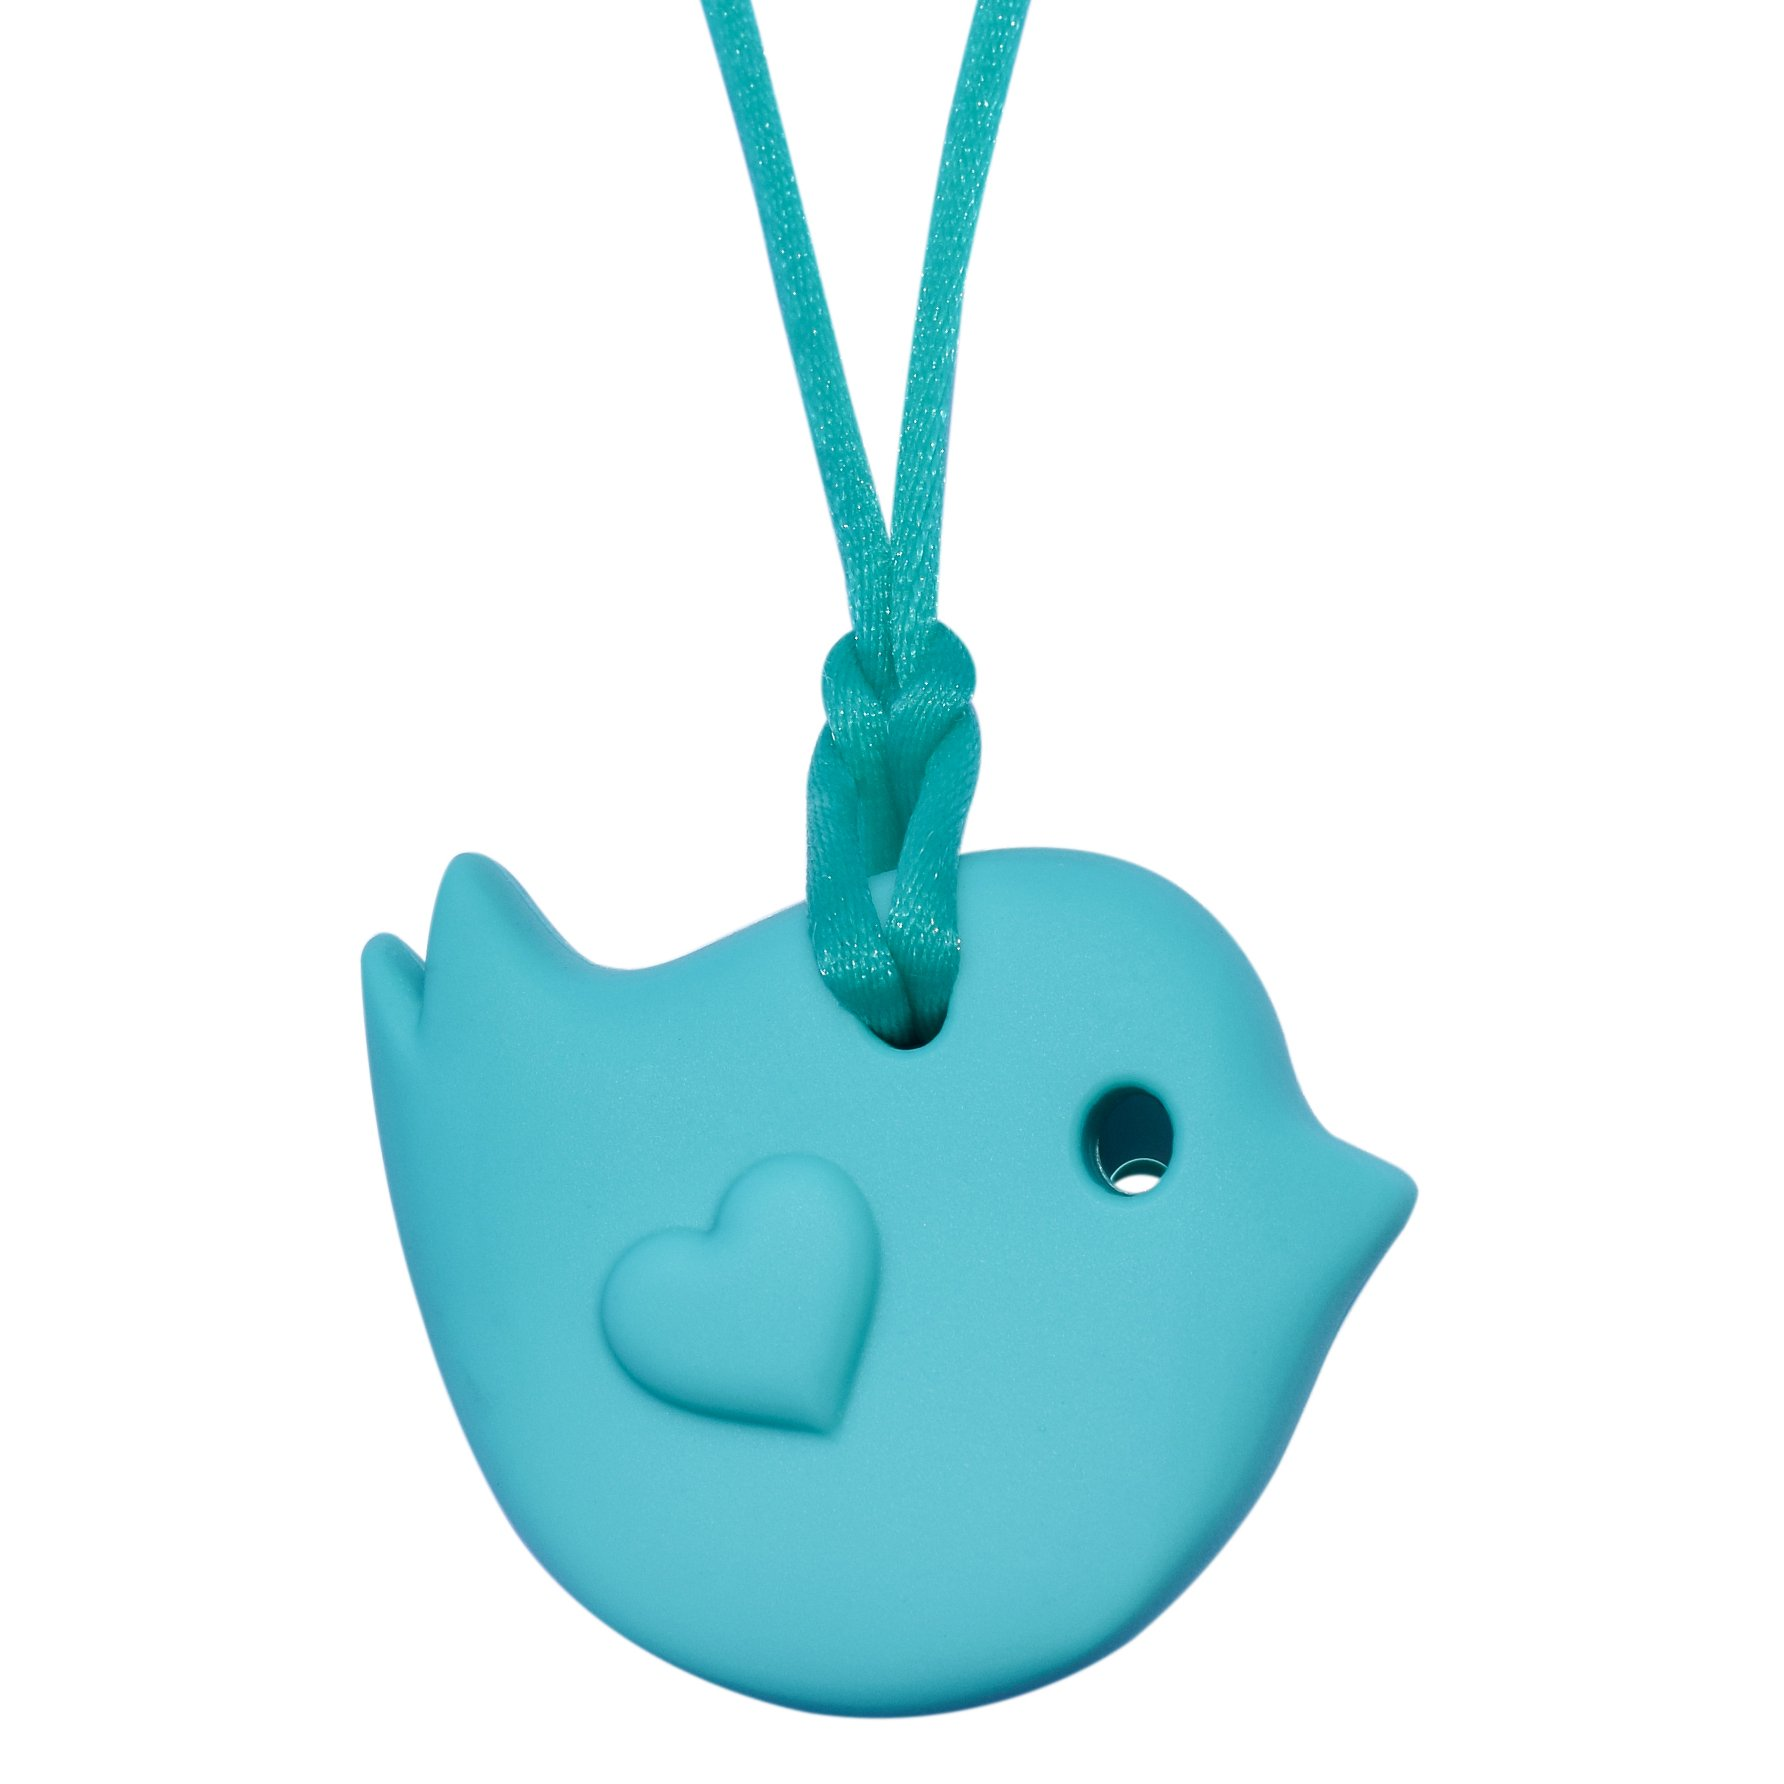 Sensory Oral Motor Aide Chewelry Necklace - Chewy Jewelry for Sensory-Focused Kids with Autism Or Special Needs - Calms Kids and Reduces Biting/Chewing – Little Bird (Aqua)